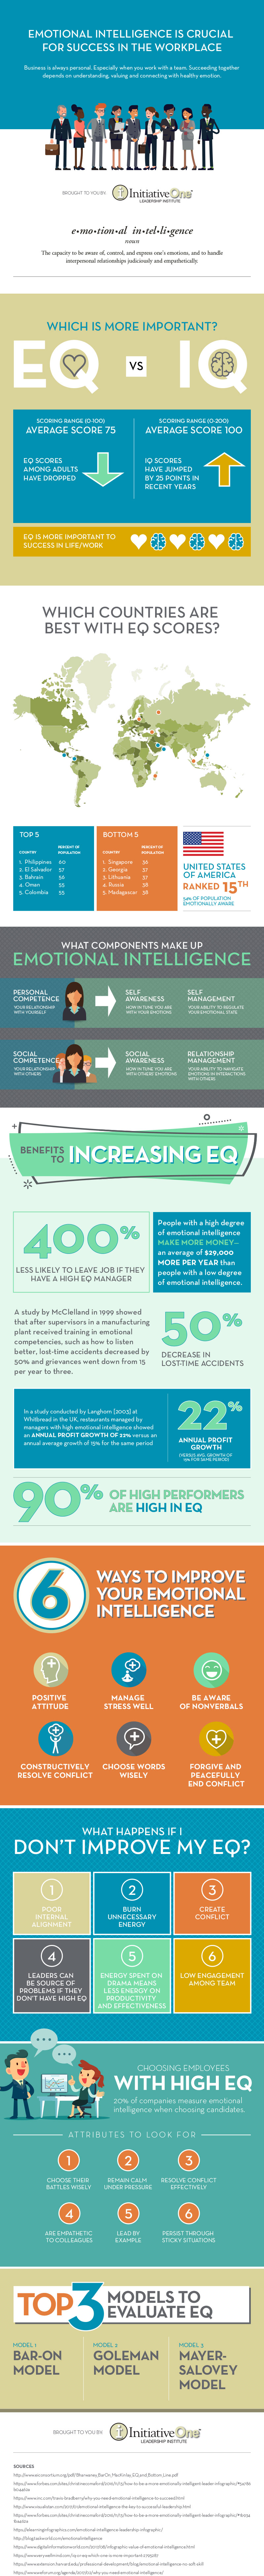 Emotional Intelligence is Crucial for Success in the Workplace (Infographic)